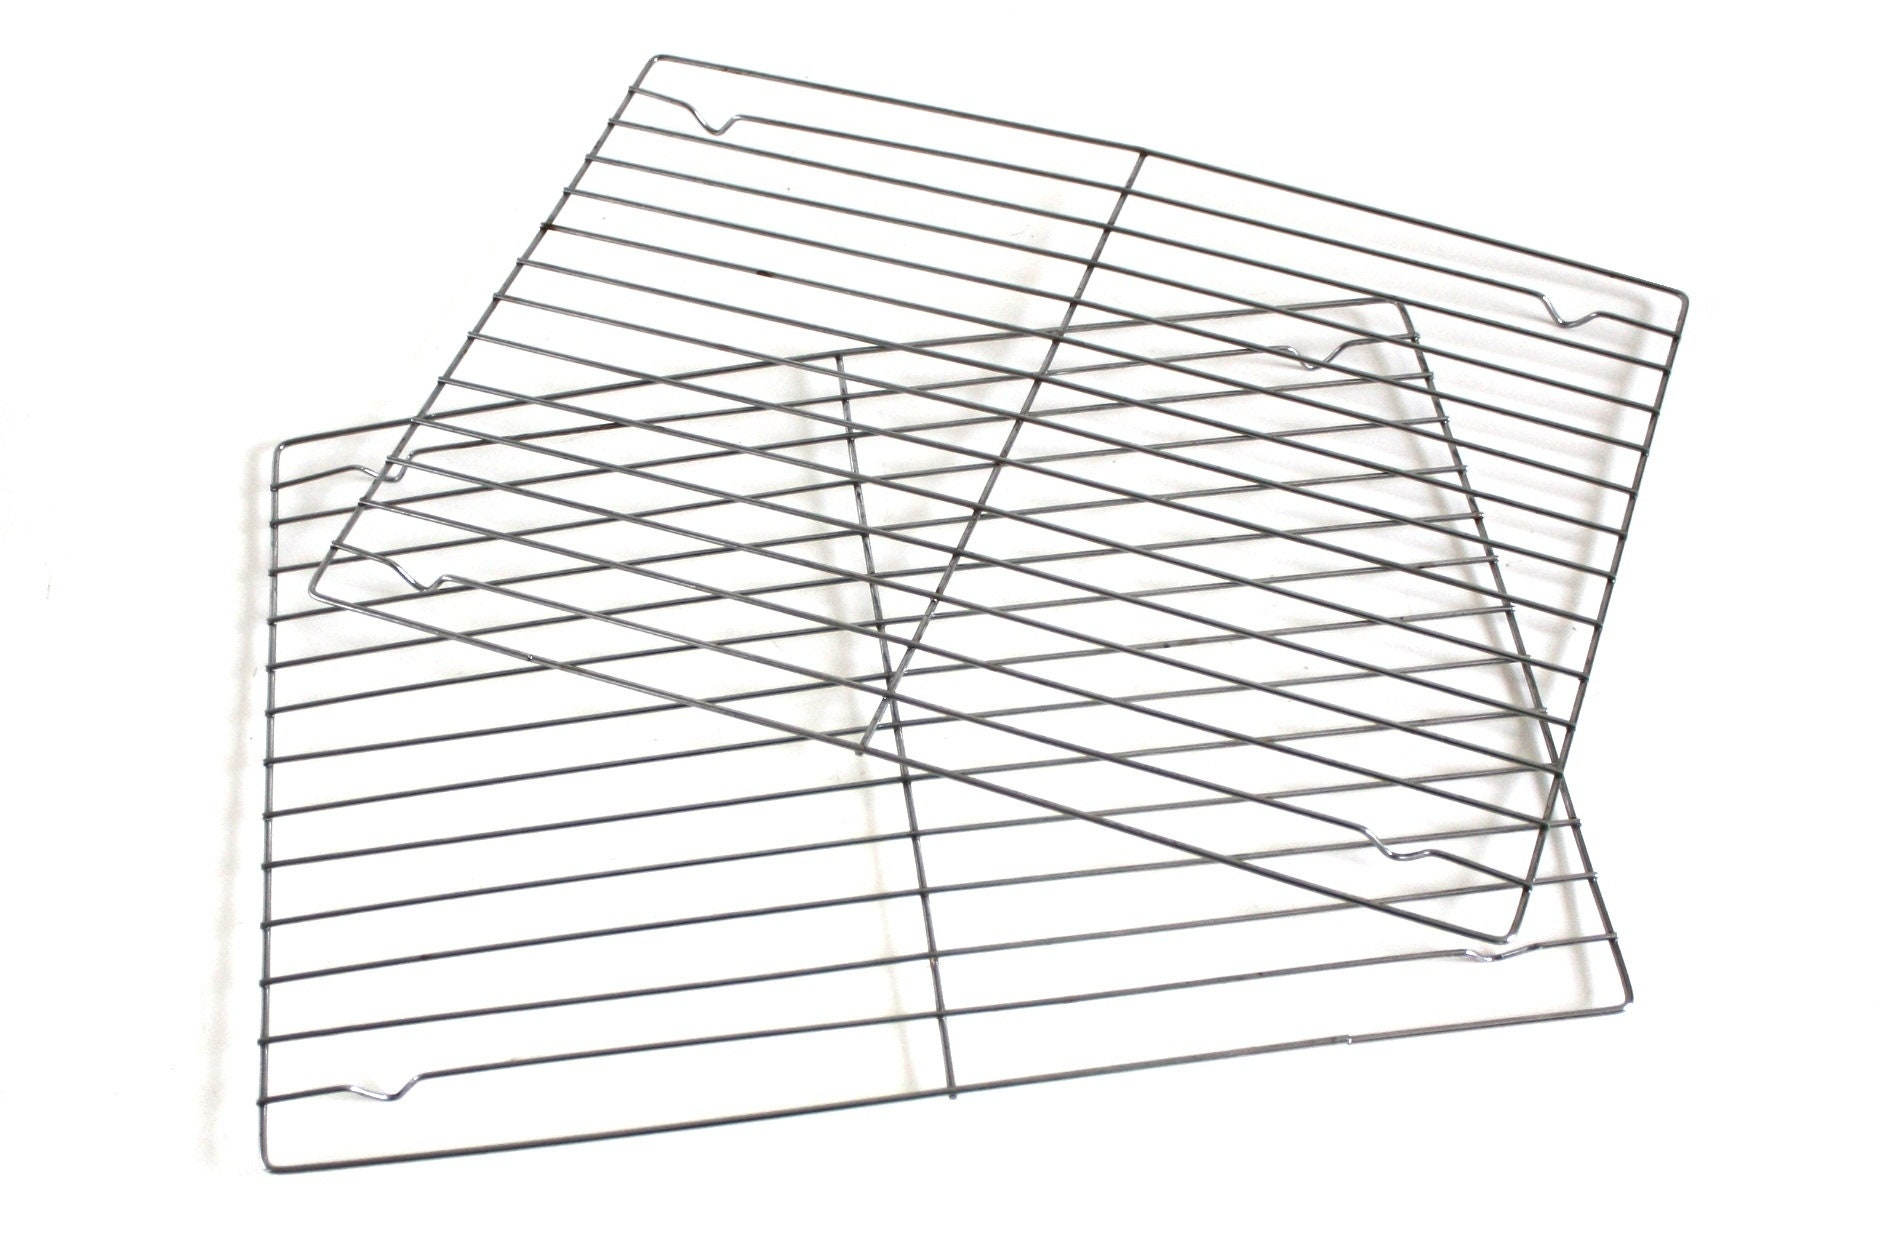 Rectangular Cooling Rack for 9 x 13 Cakes or Cookies